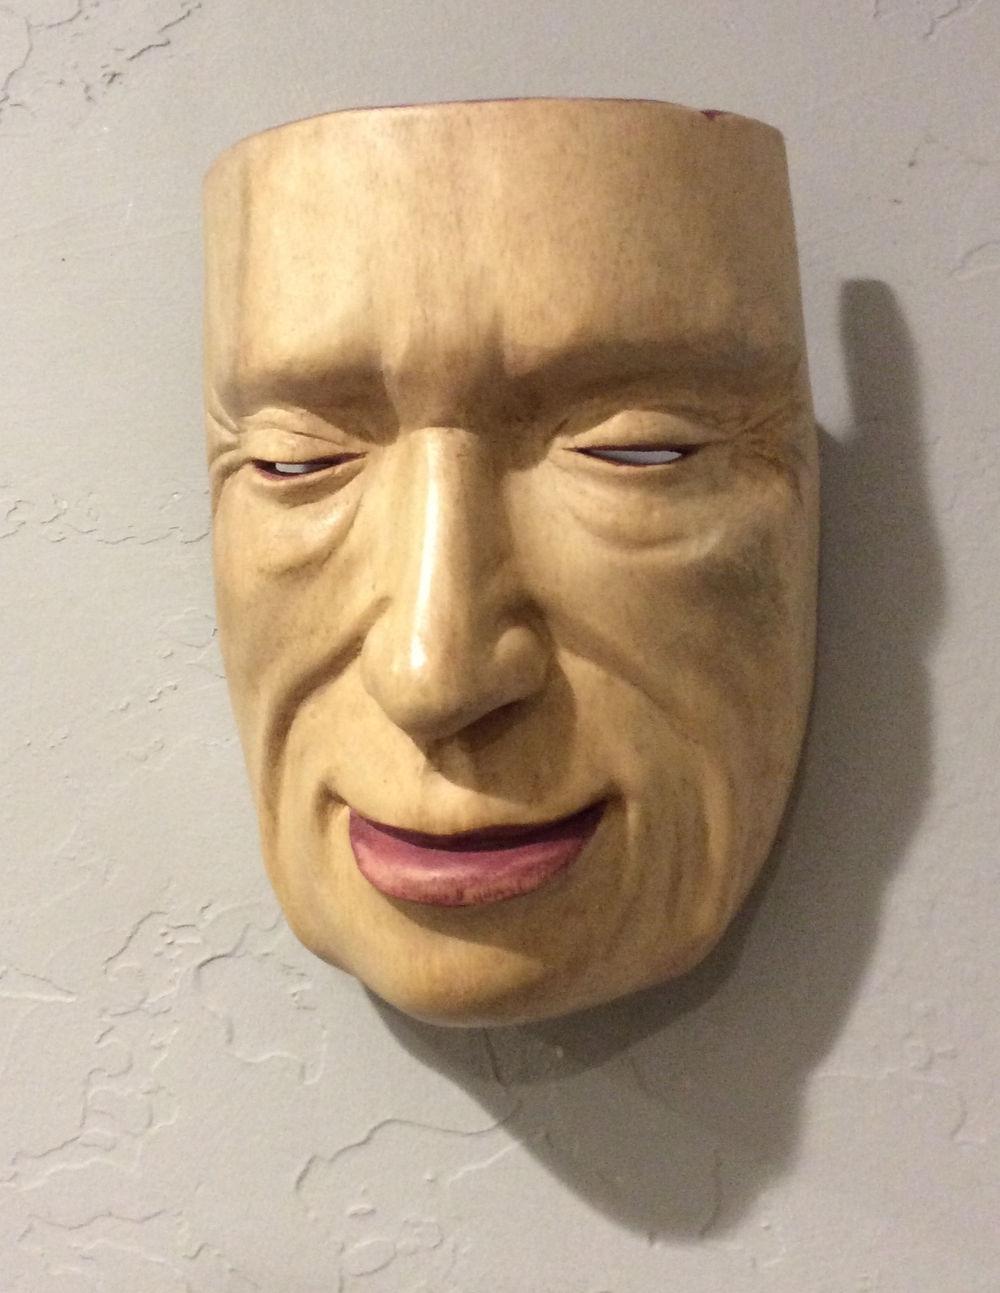 The mask that I carved for the first workshop has a maroon acrylic wash on the back that comes through to the front for the lips, nostrils and eye lids. I worked really hard on trying to maintain the symmetry of this mask as I worked on it.